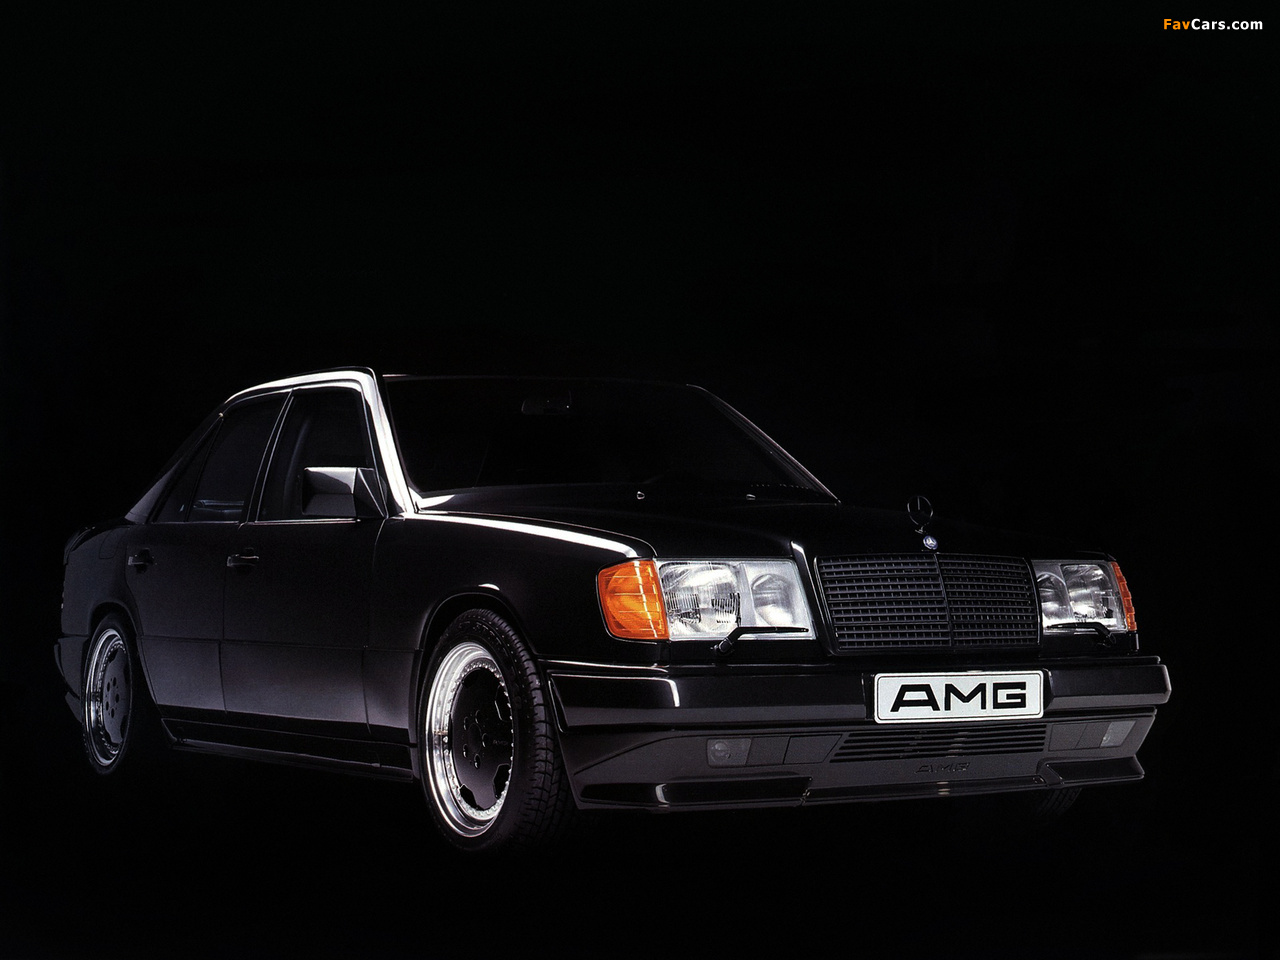 Amg 300 e 6 0 hammer w124 1988 91 wallpapers 1280x960 for Mercedes benz model history